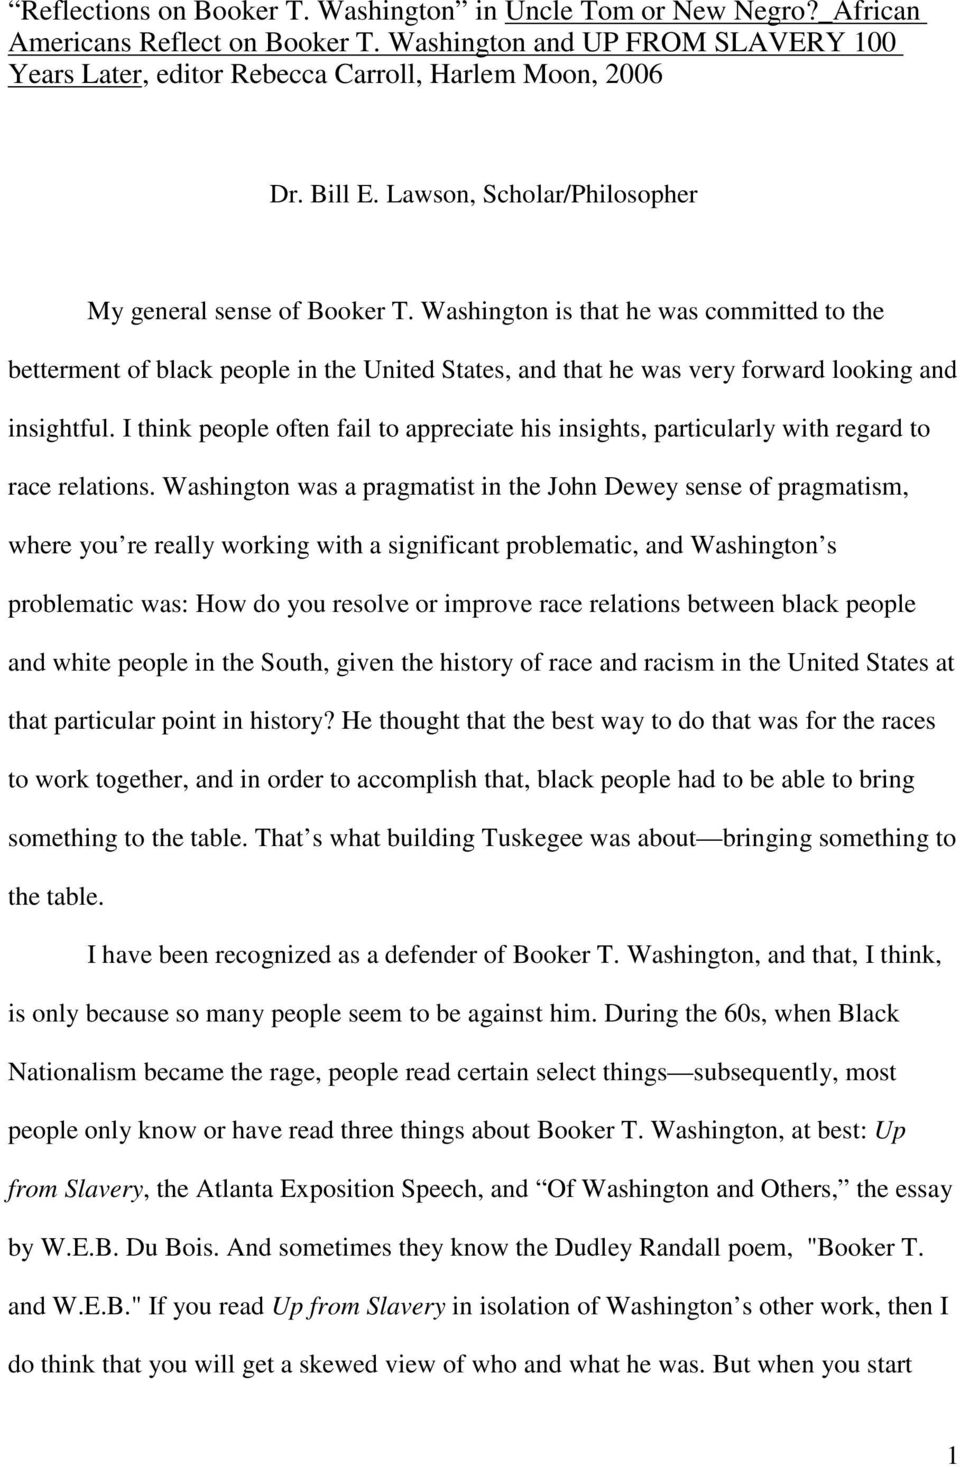 Washington is that he was committed to the betterment of black people in the United States, and that he was very forward looking and insightful.